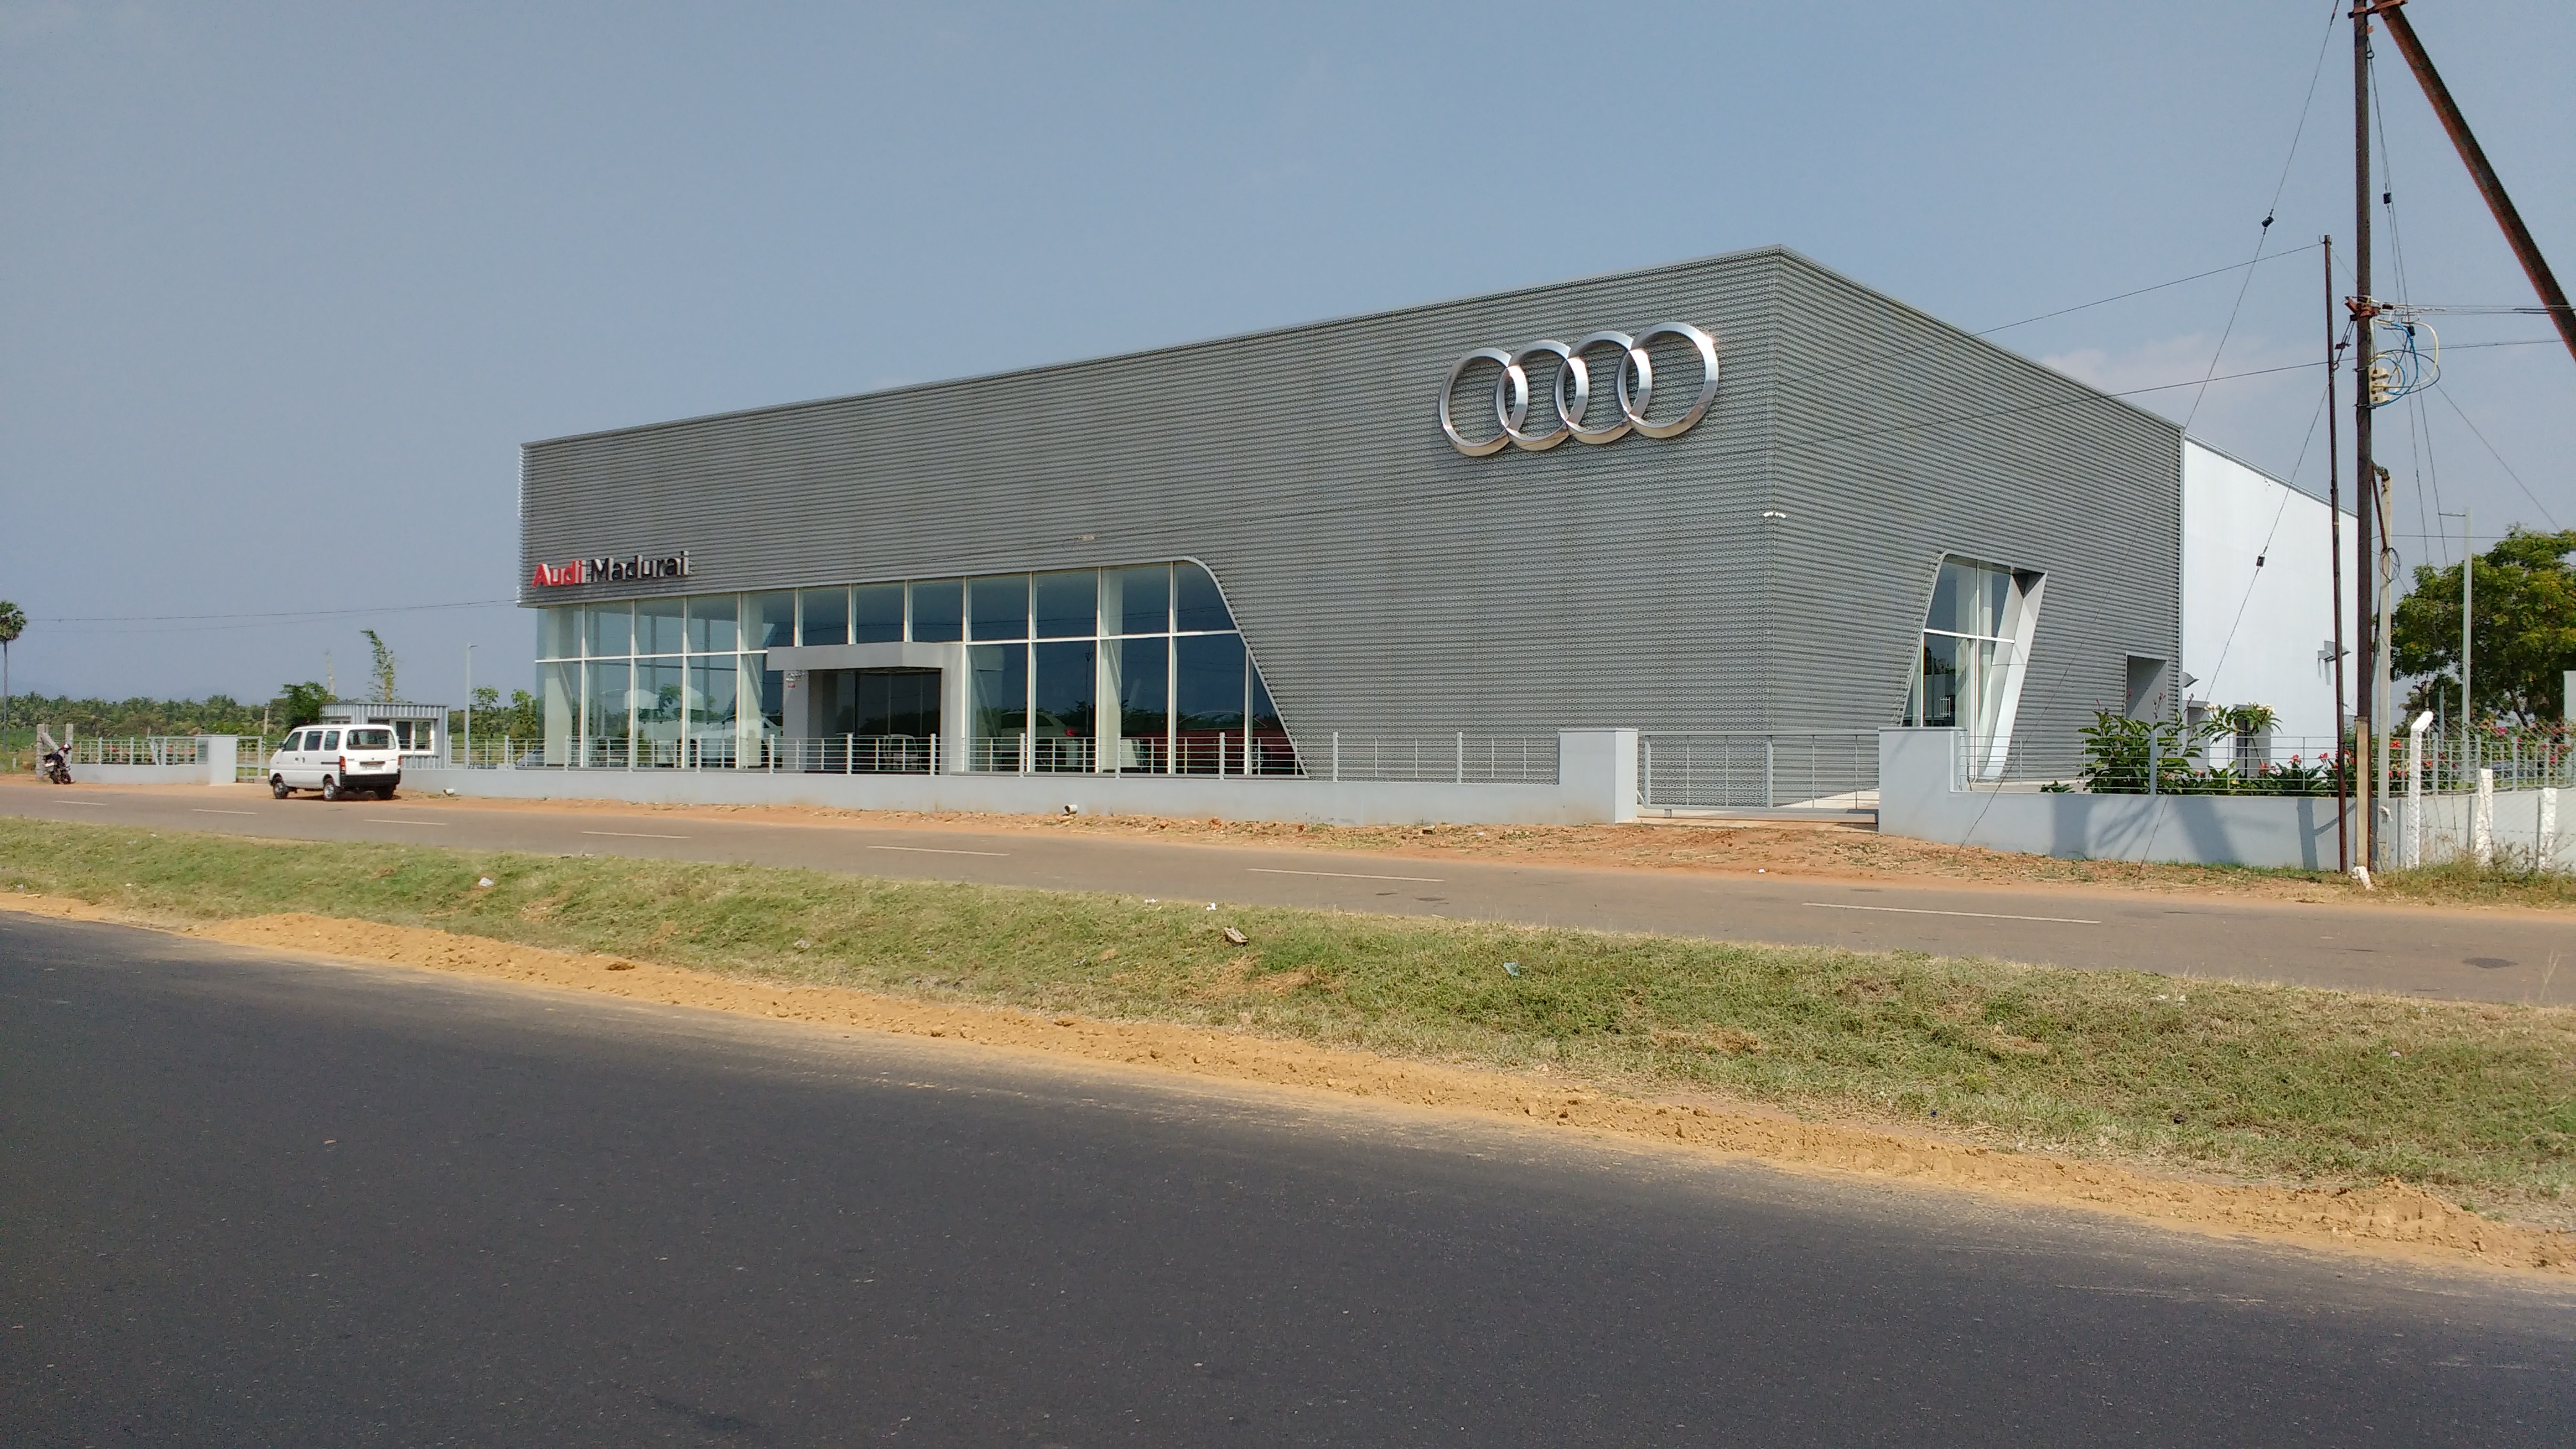 File Audi Madurai Showroom 2 Jpg Wikimedia Commons